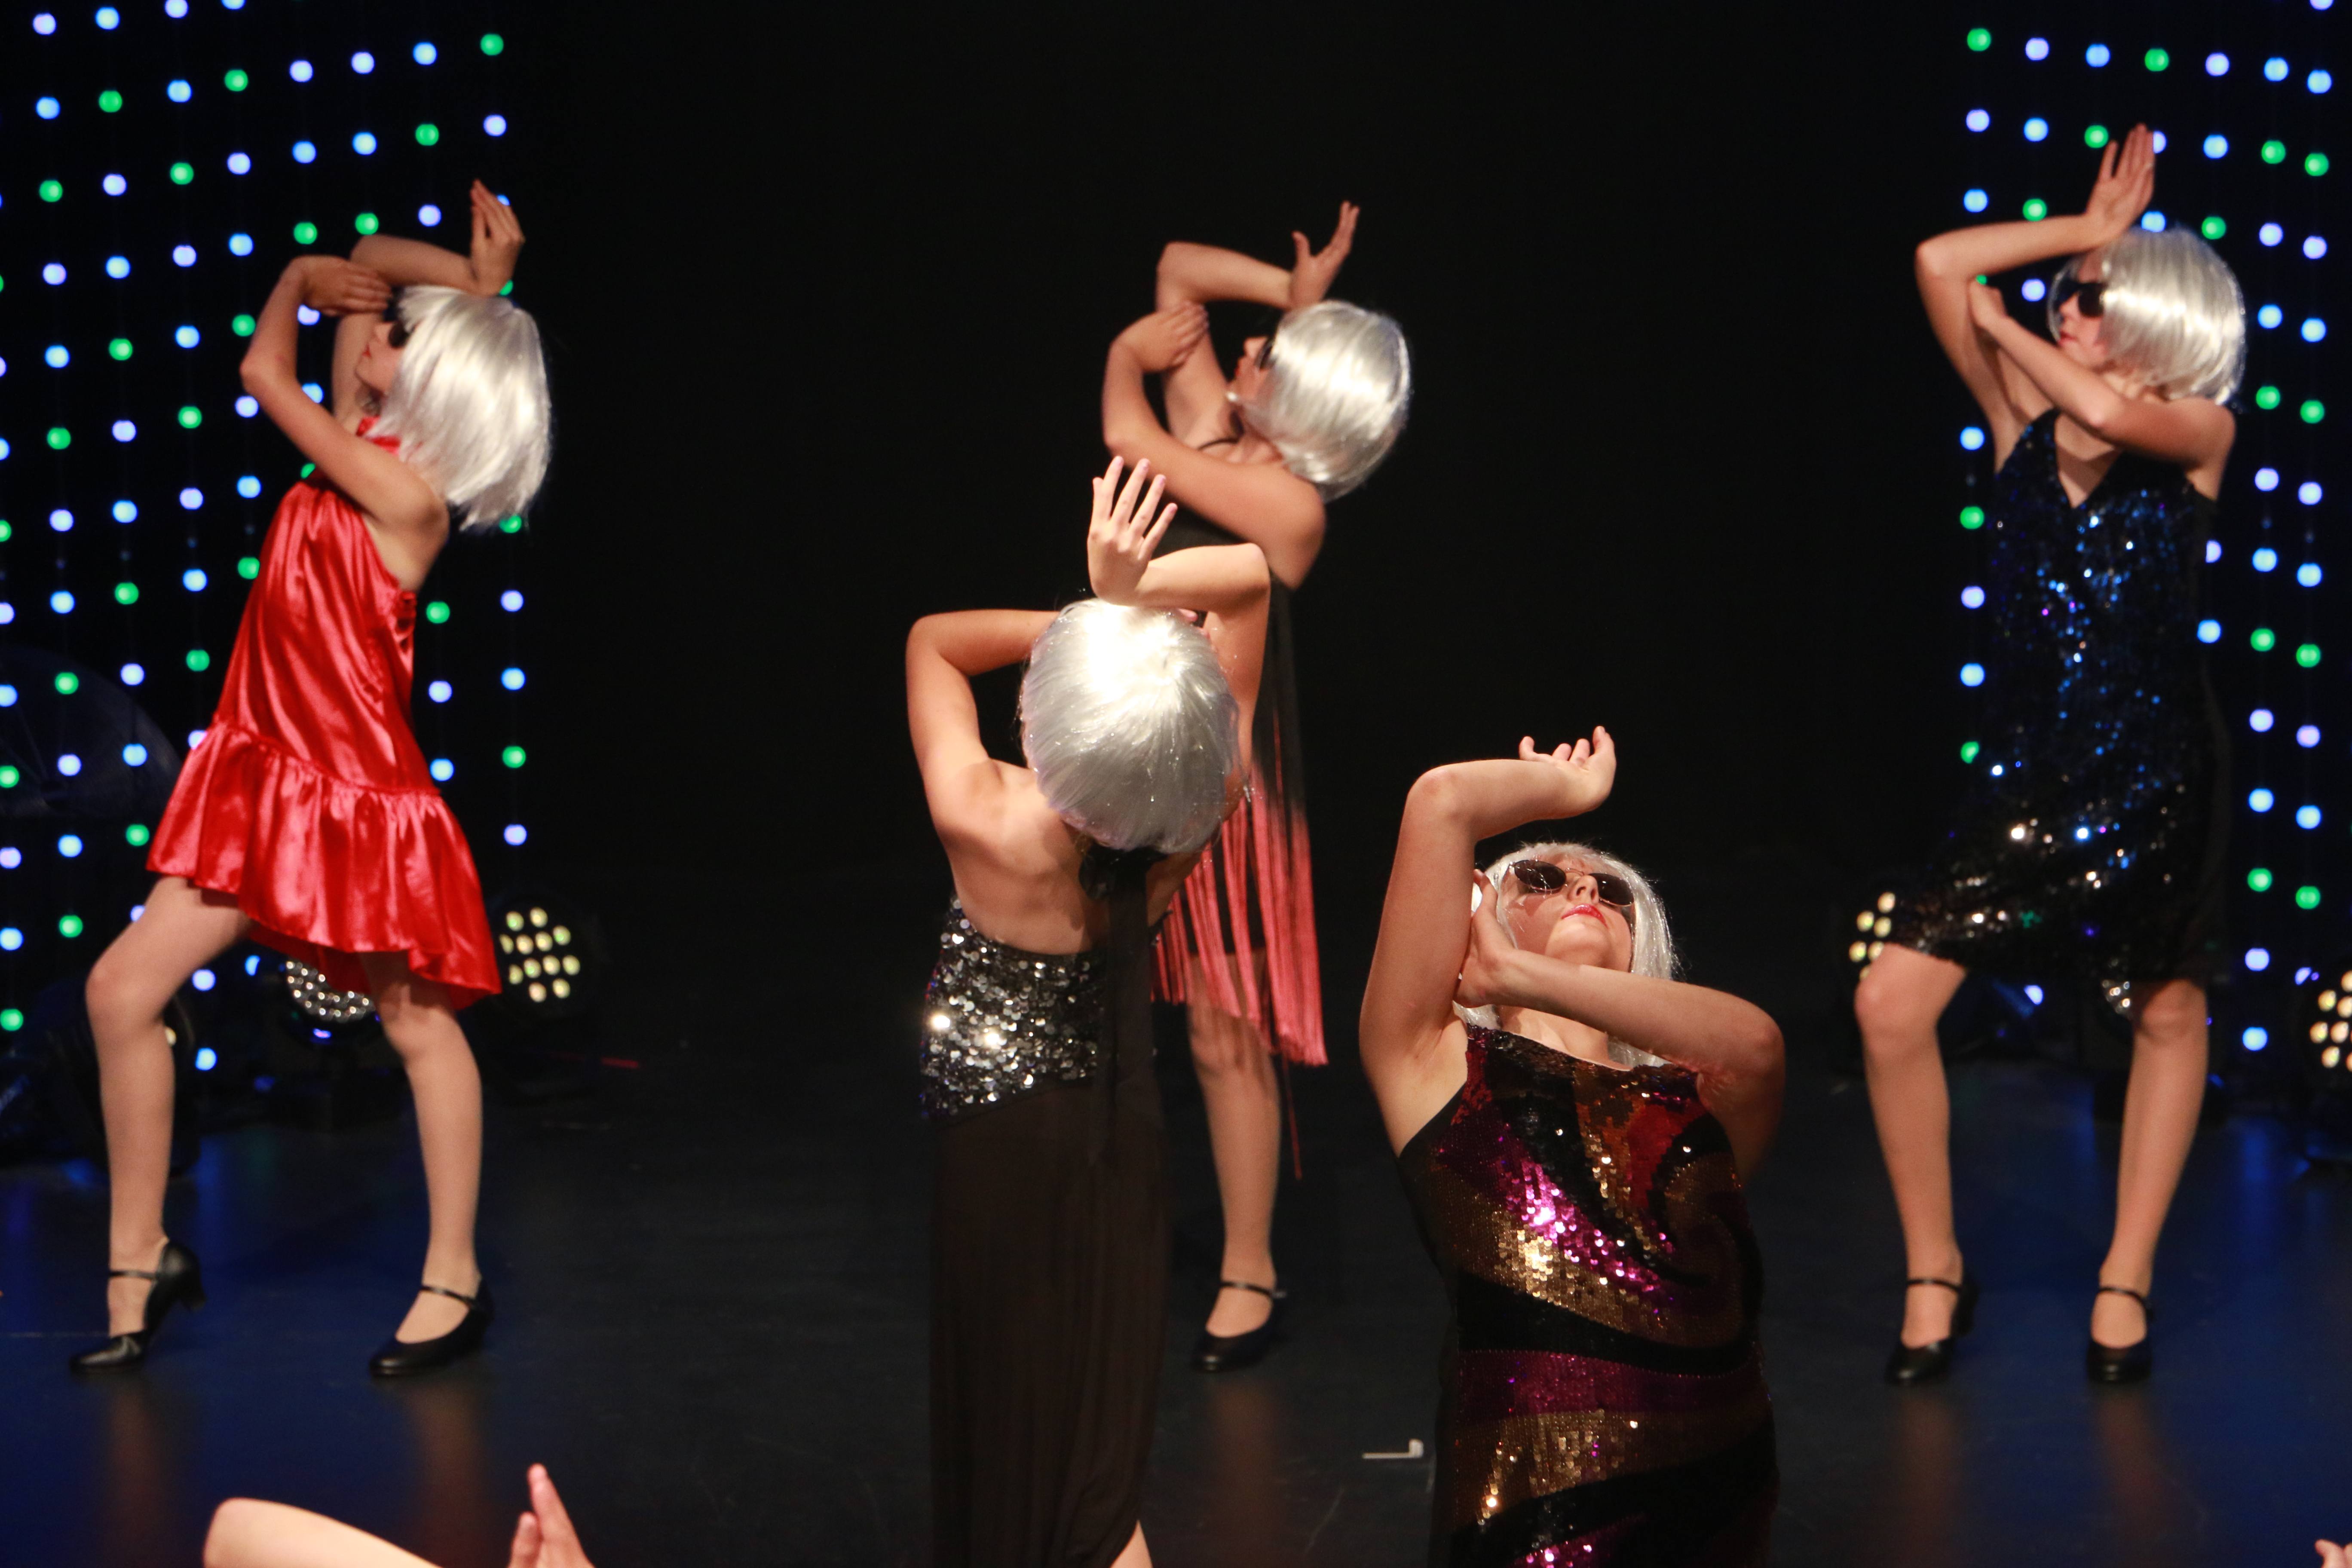 Girls performing dance show